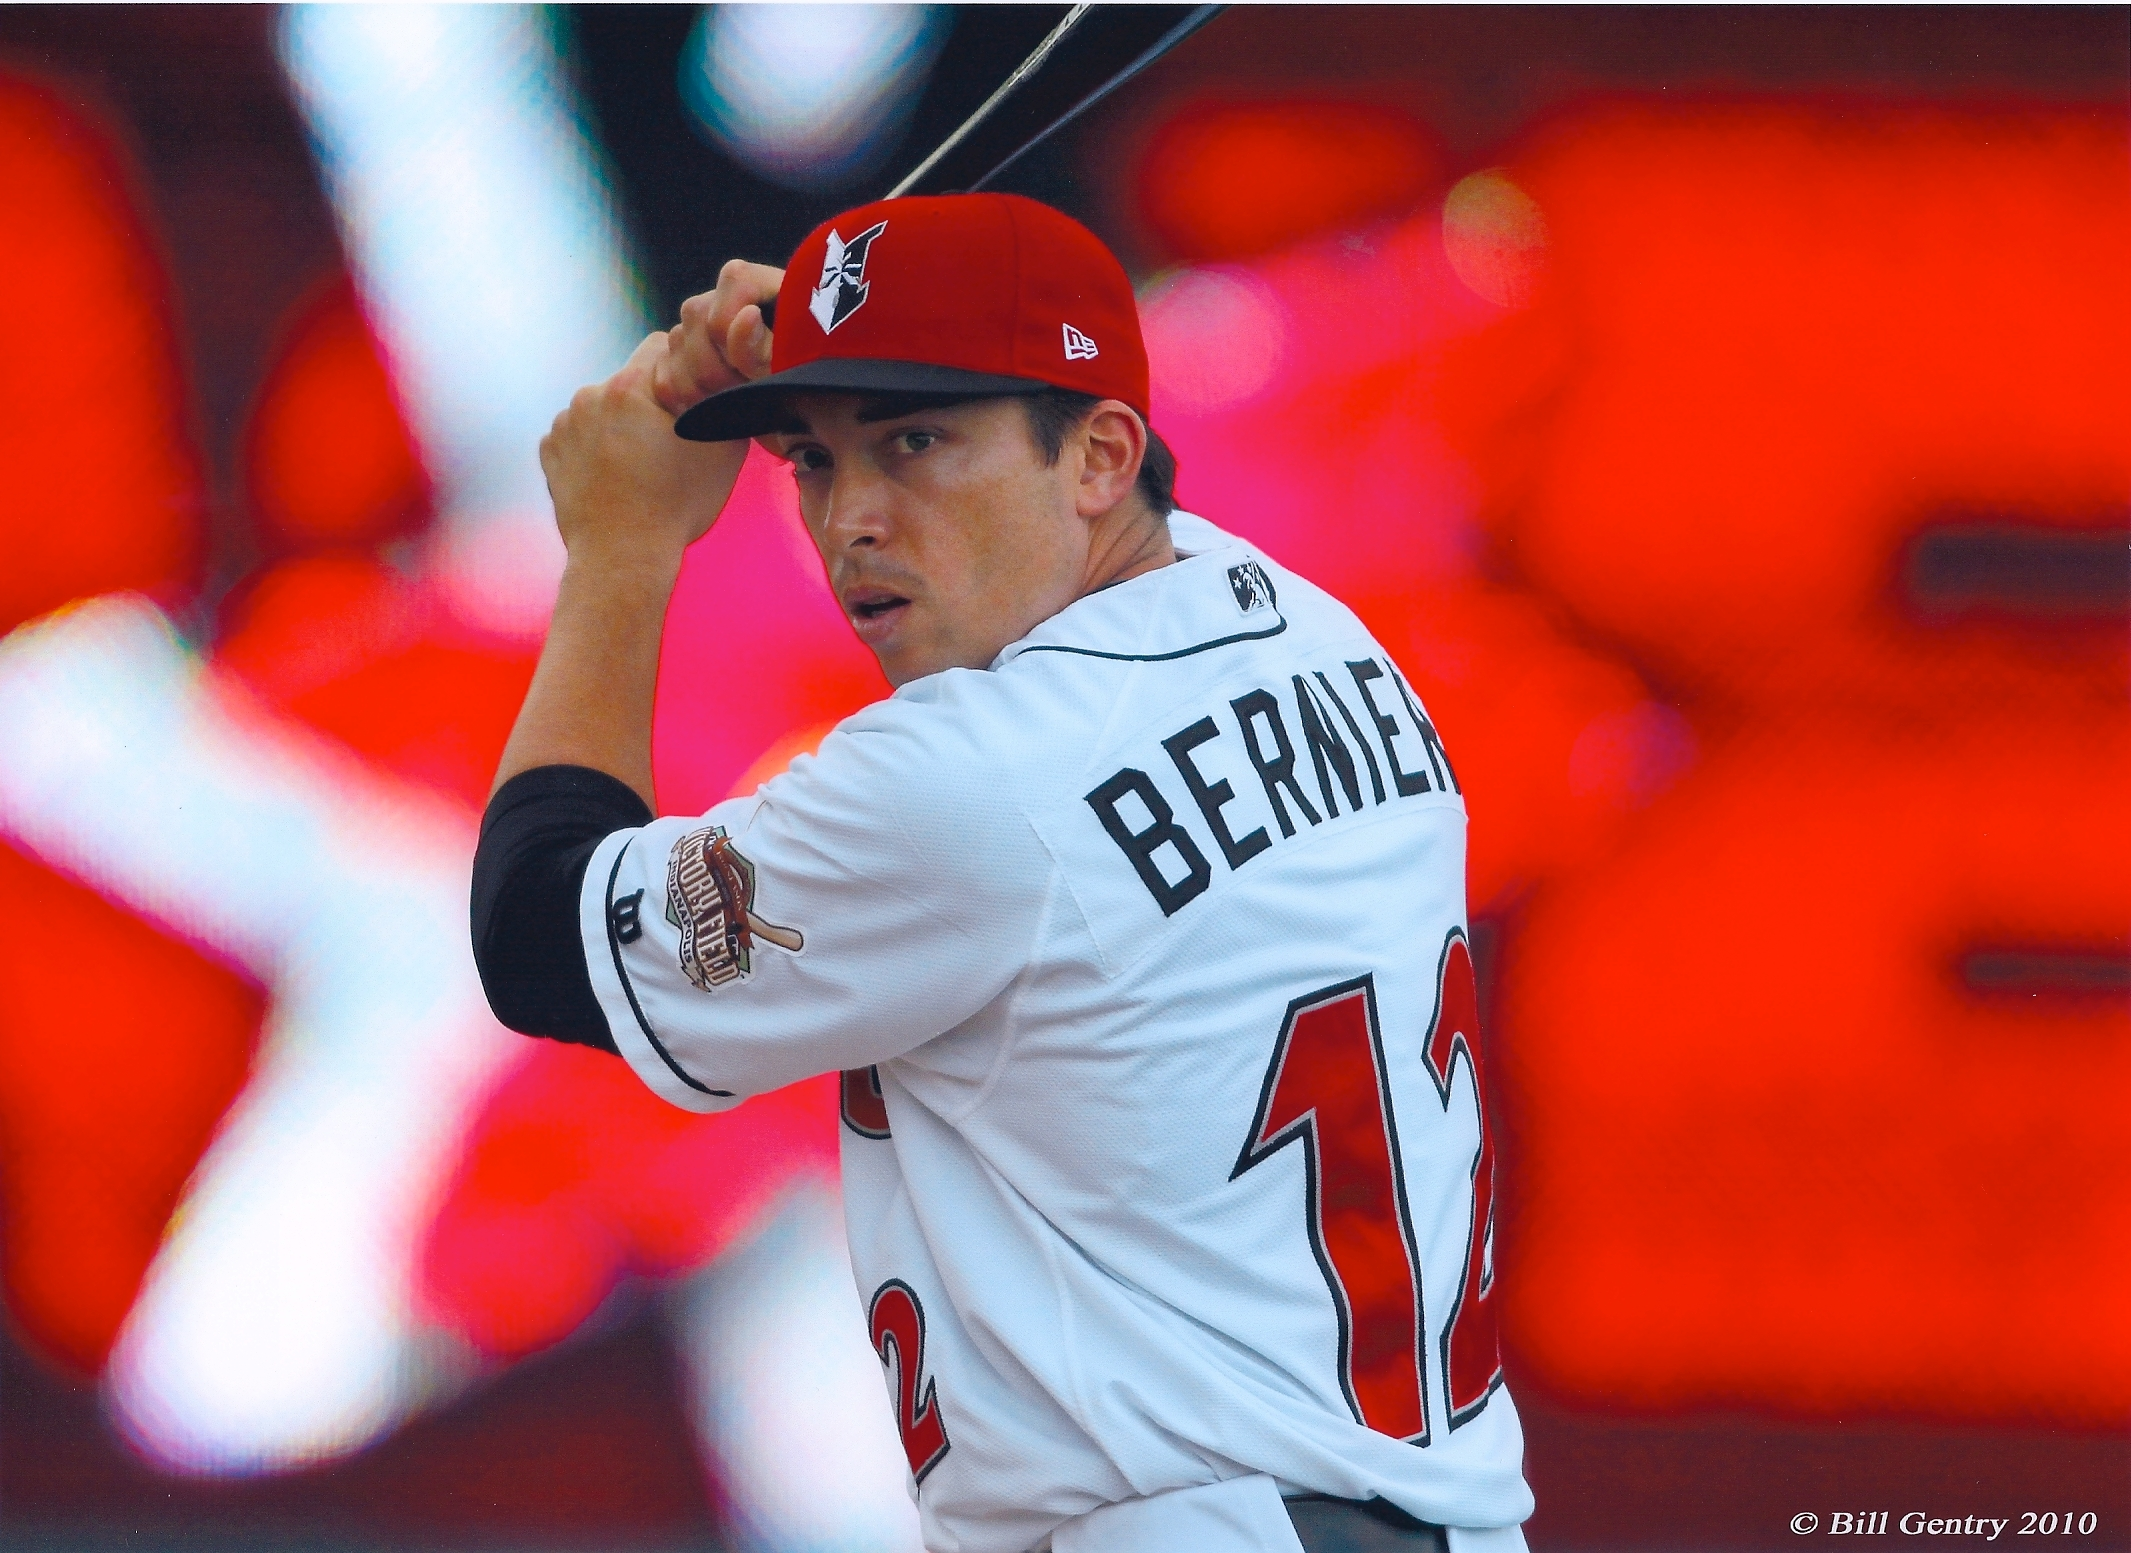 Doug Bernier discusses how to get drafted for baseball players